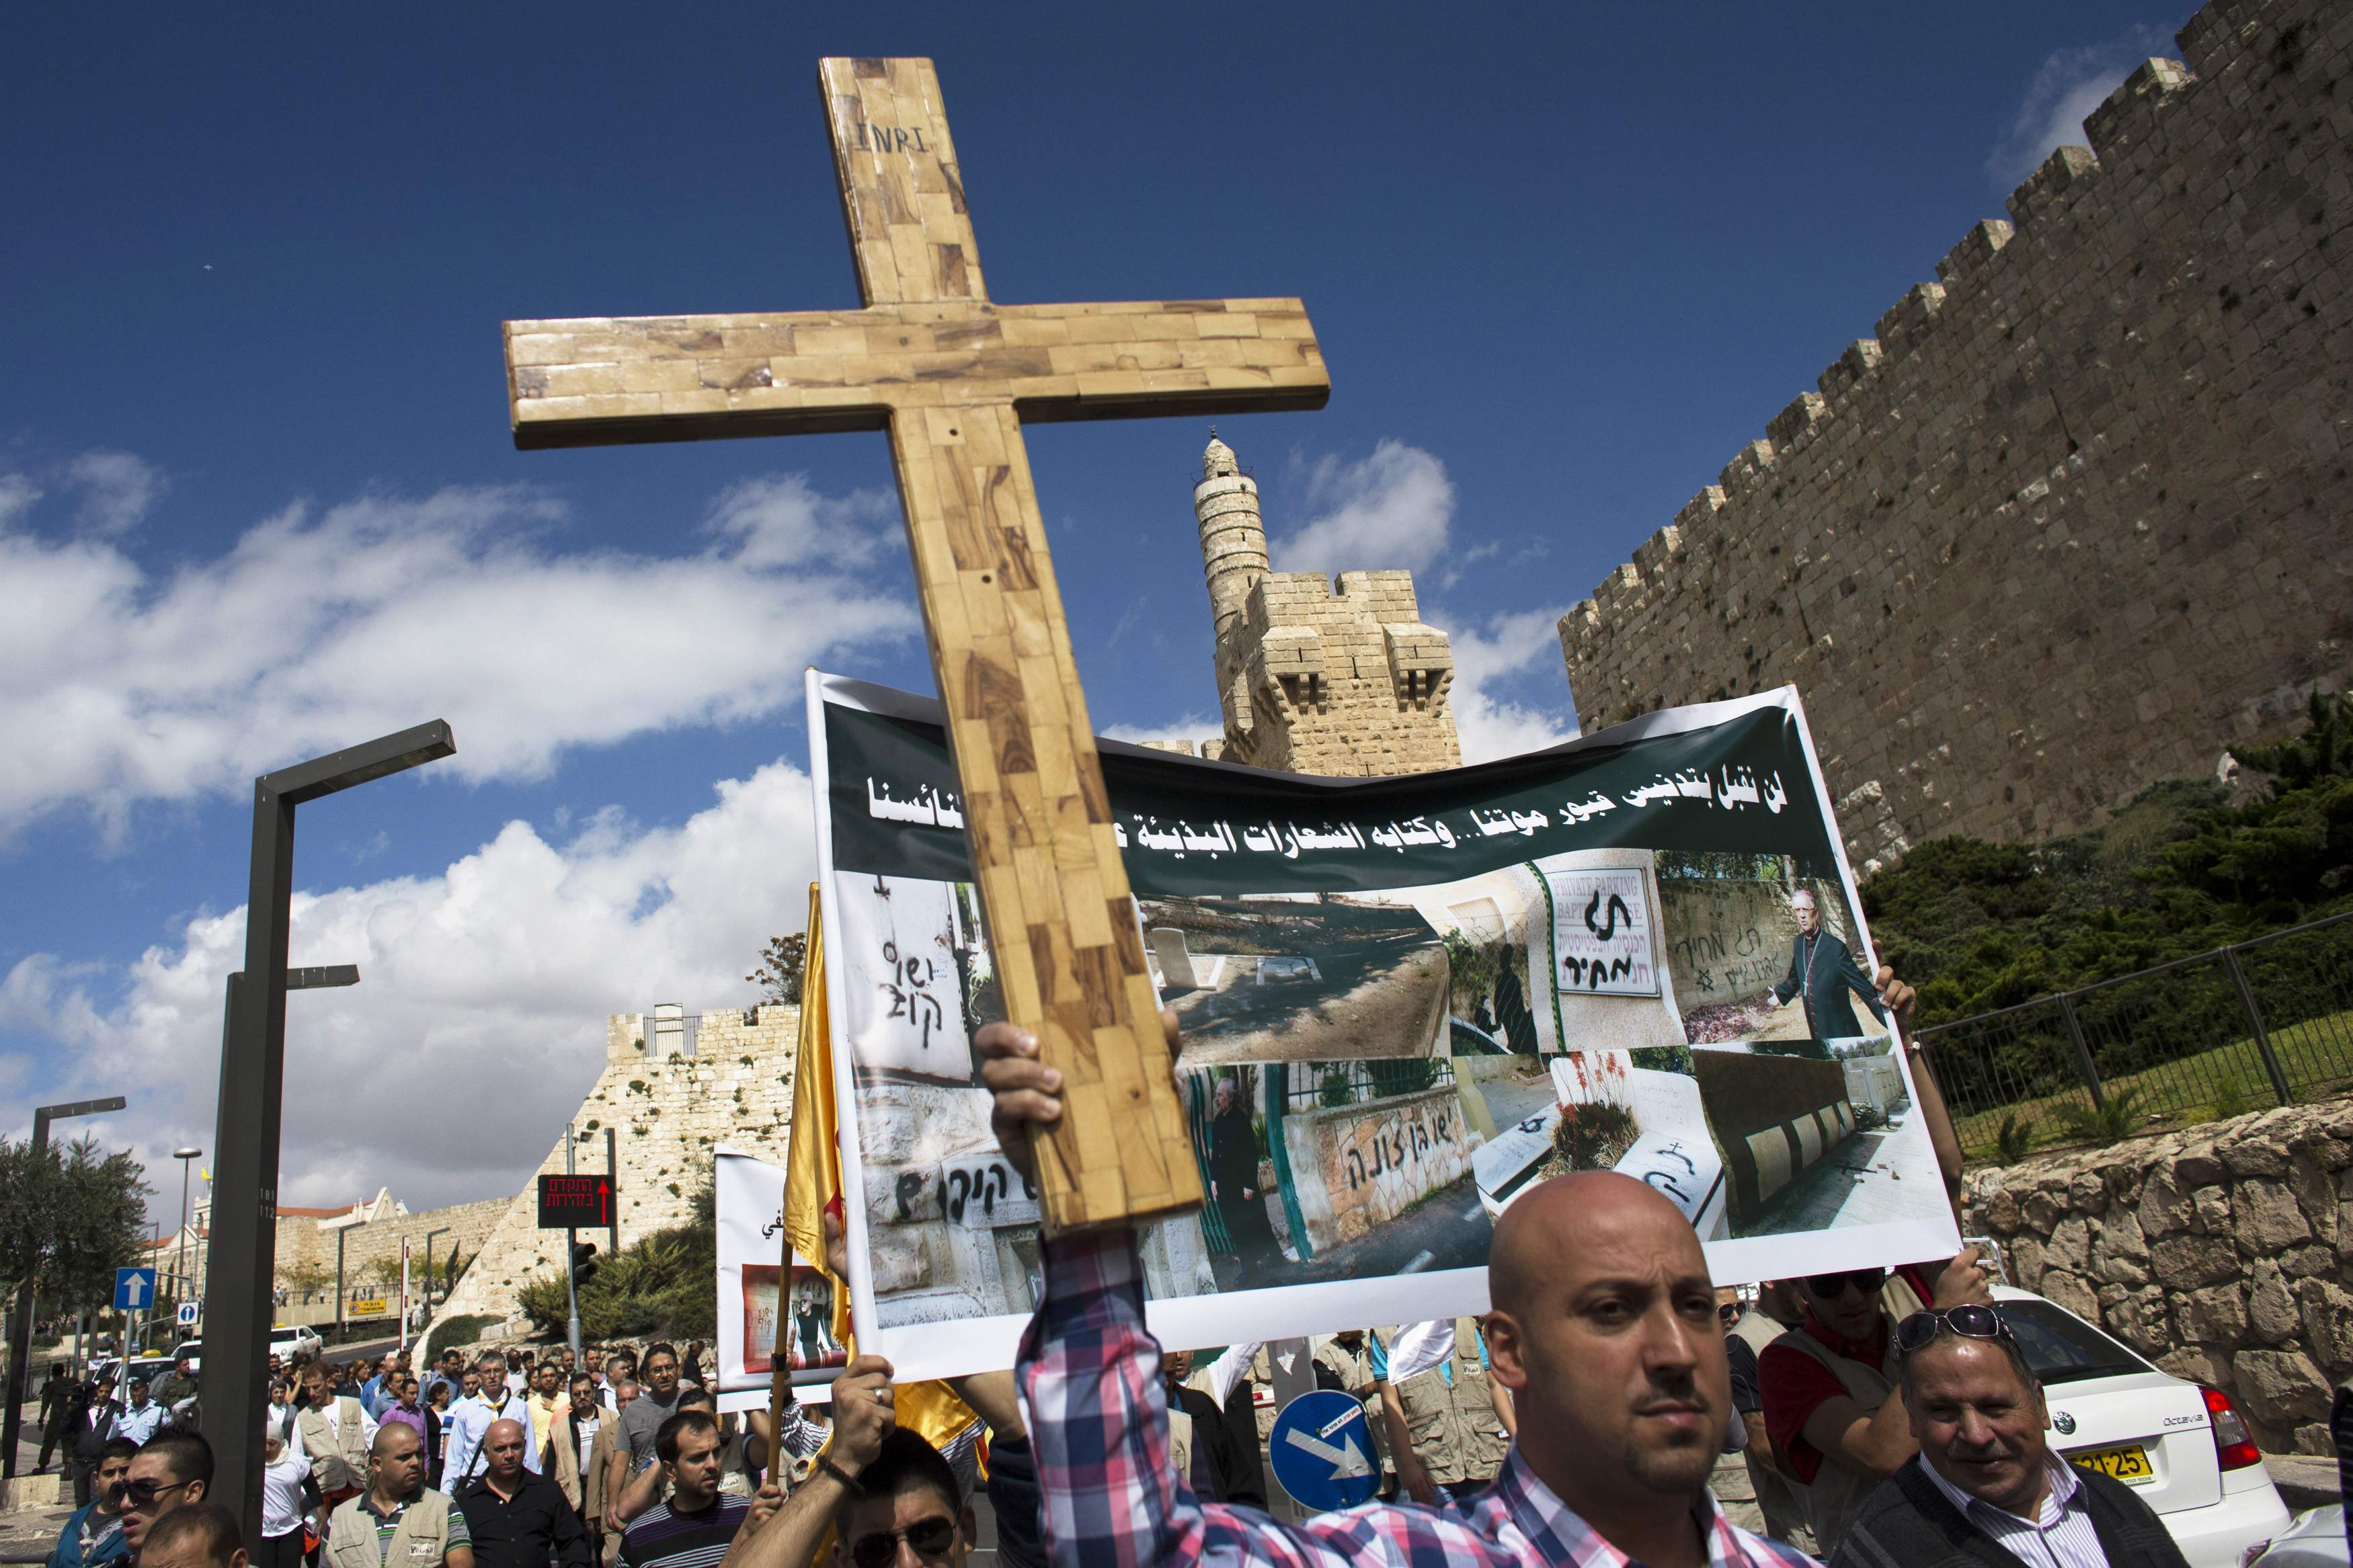 A Palestinian protester holds a cross during a demonstration against acts of vandalism on Christian sites in Israel and the occupied West Bank, outside Jerusalem's Old City